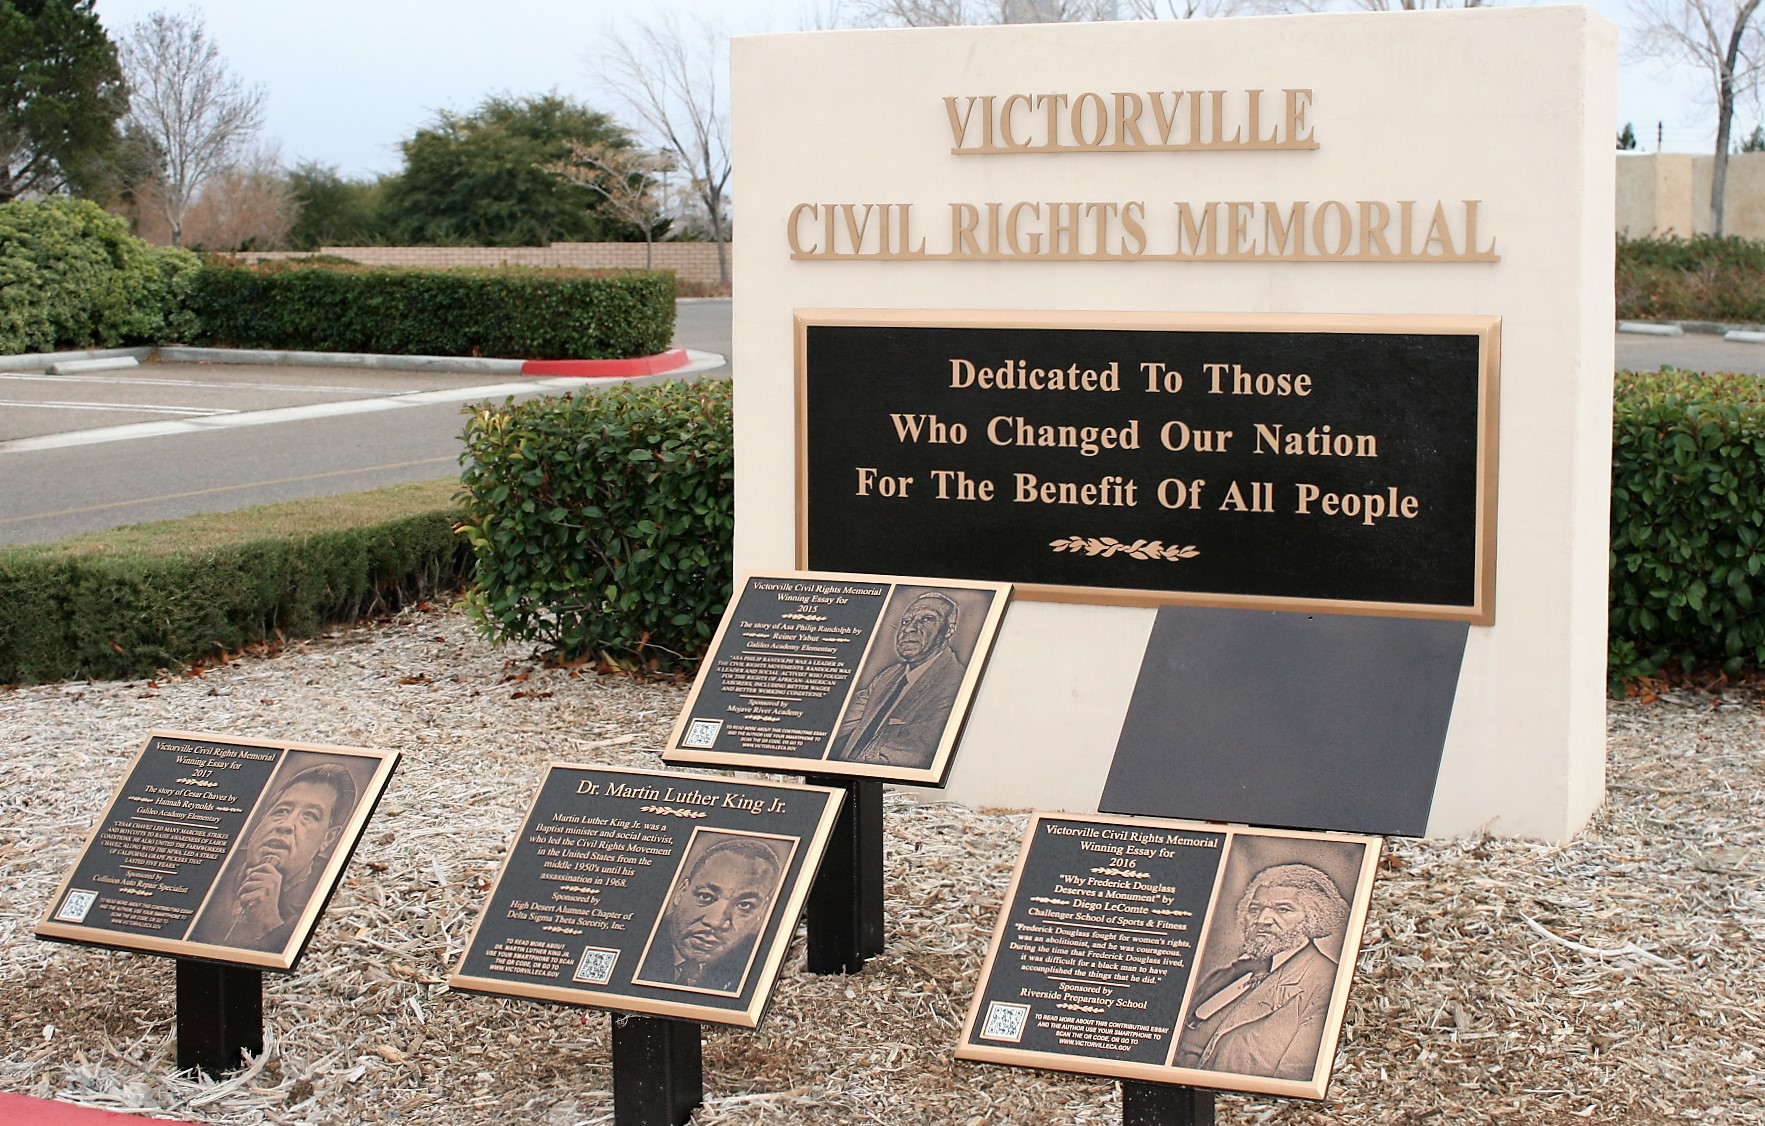 City of Victorville Civil Rights Memorial